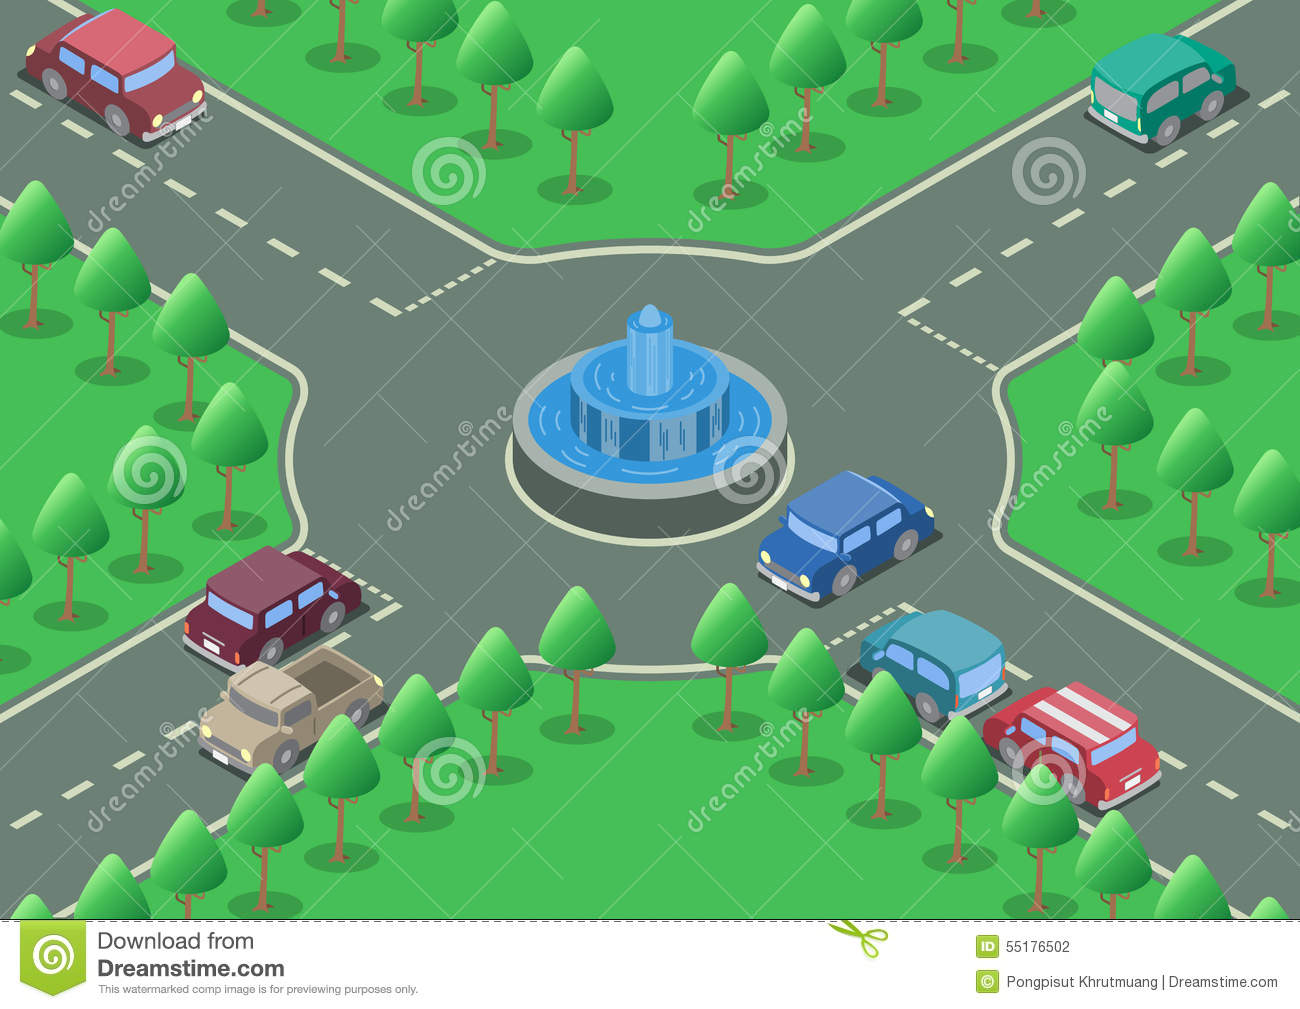 Roundabout road clipart.